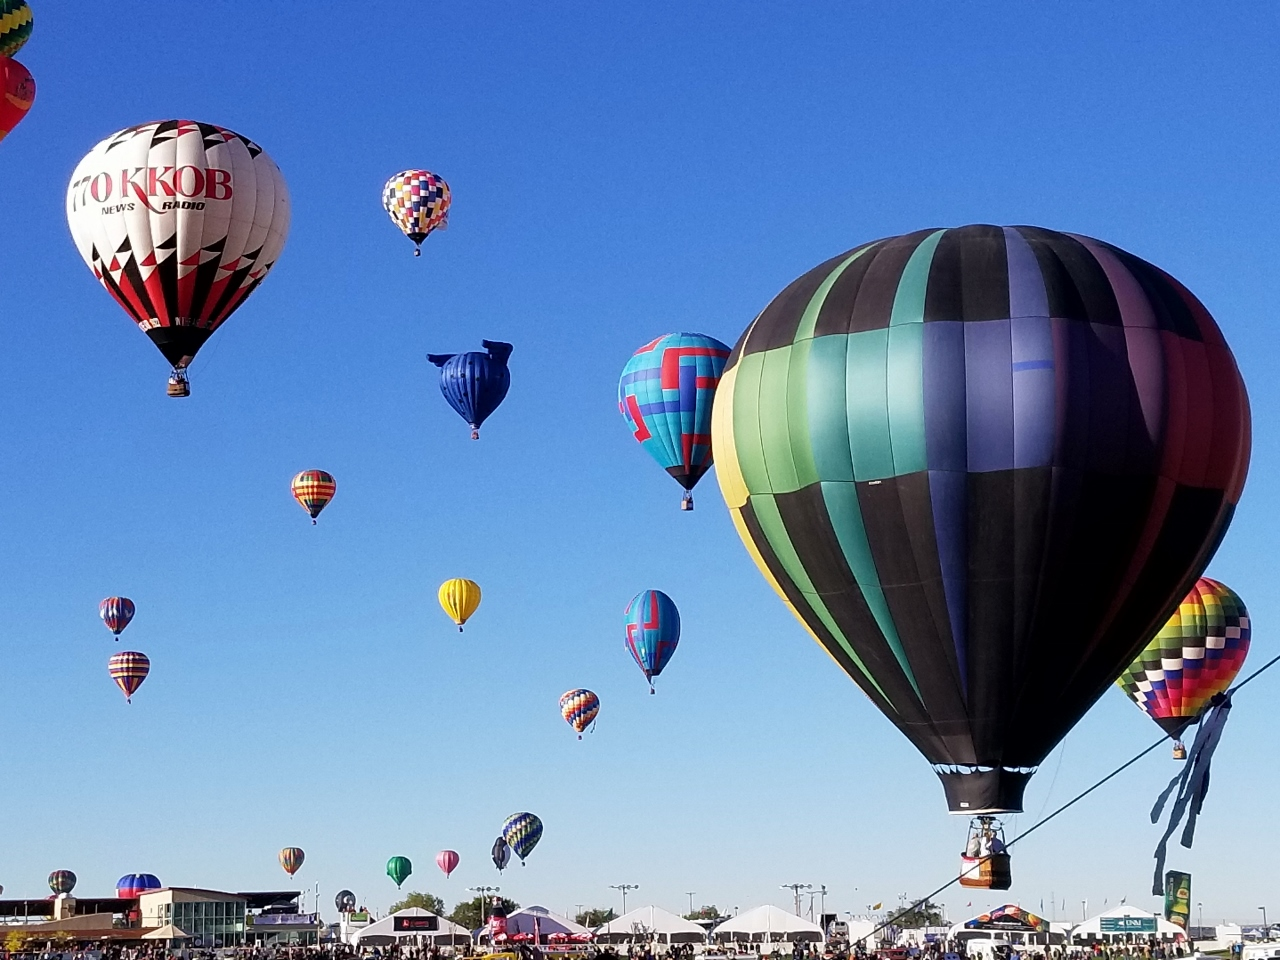 The hot air balloons in New Mexico